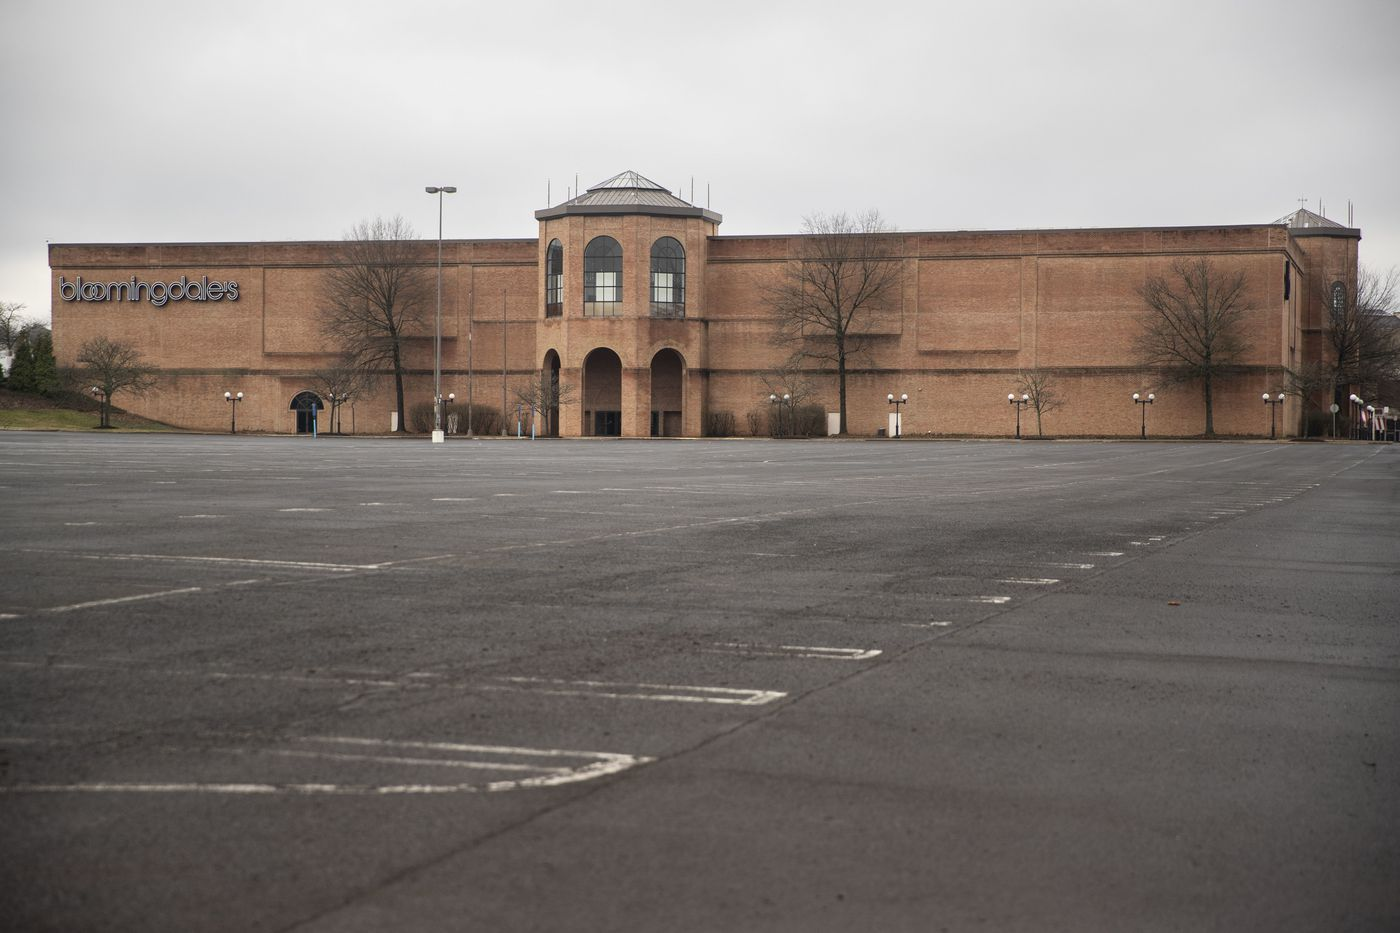 Empty parking lots at the closed Willow Grove Park Mall in Willow Grove, Pa. on Friday, March 13, 2020.